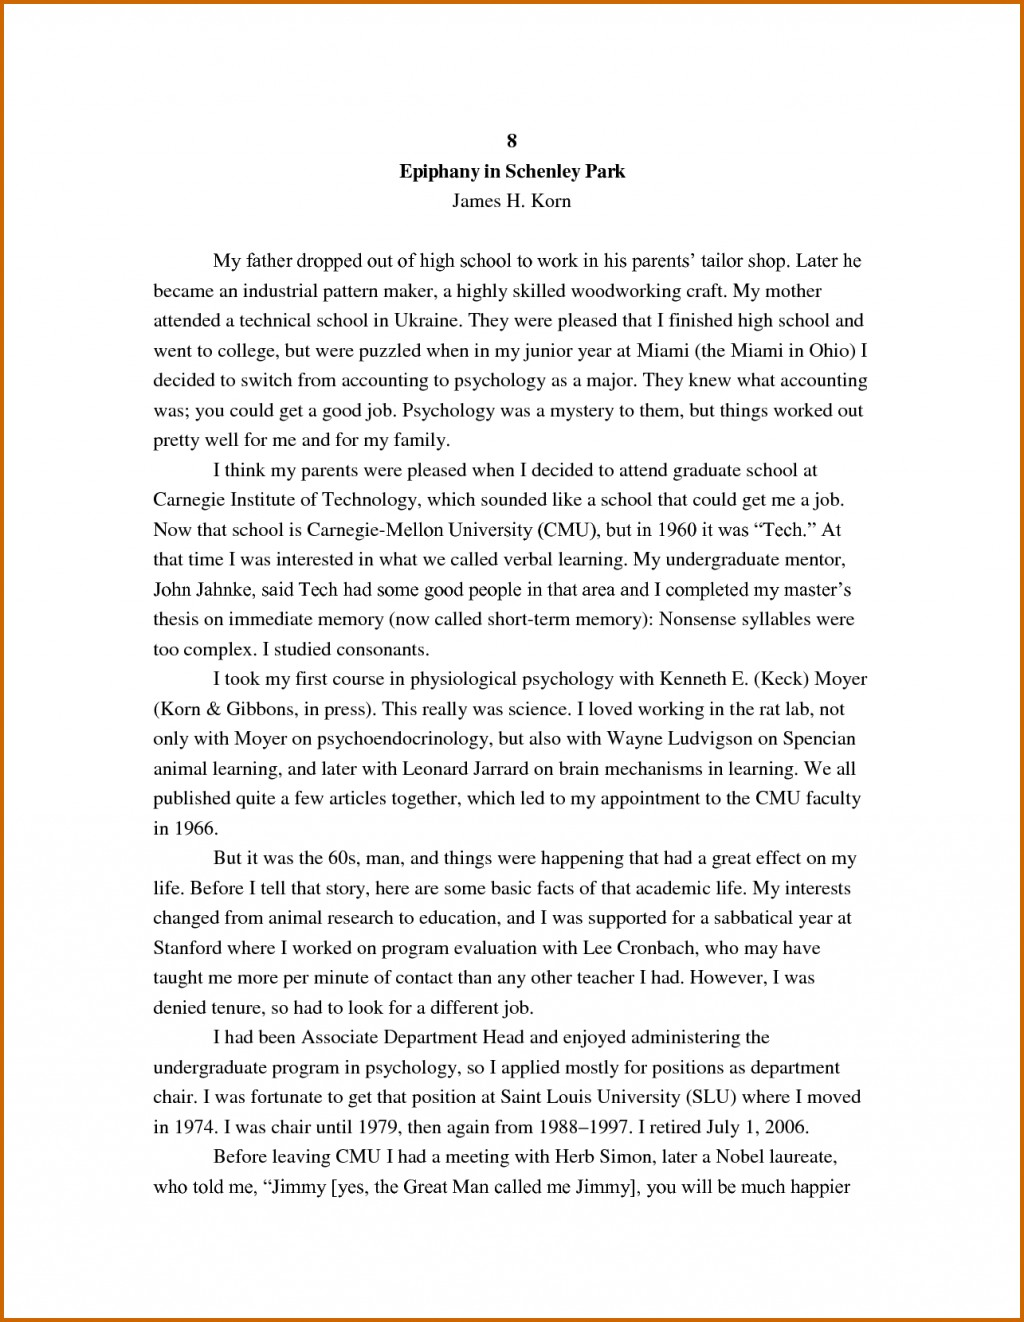 017 How To Write An Autobiographical Essay Autobiography For College Incredible Graduate School Example A Job Large